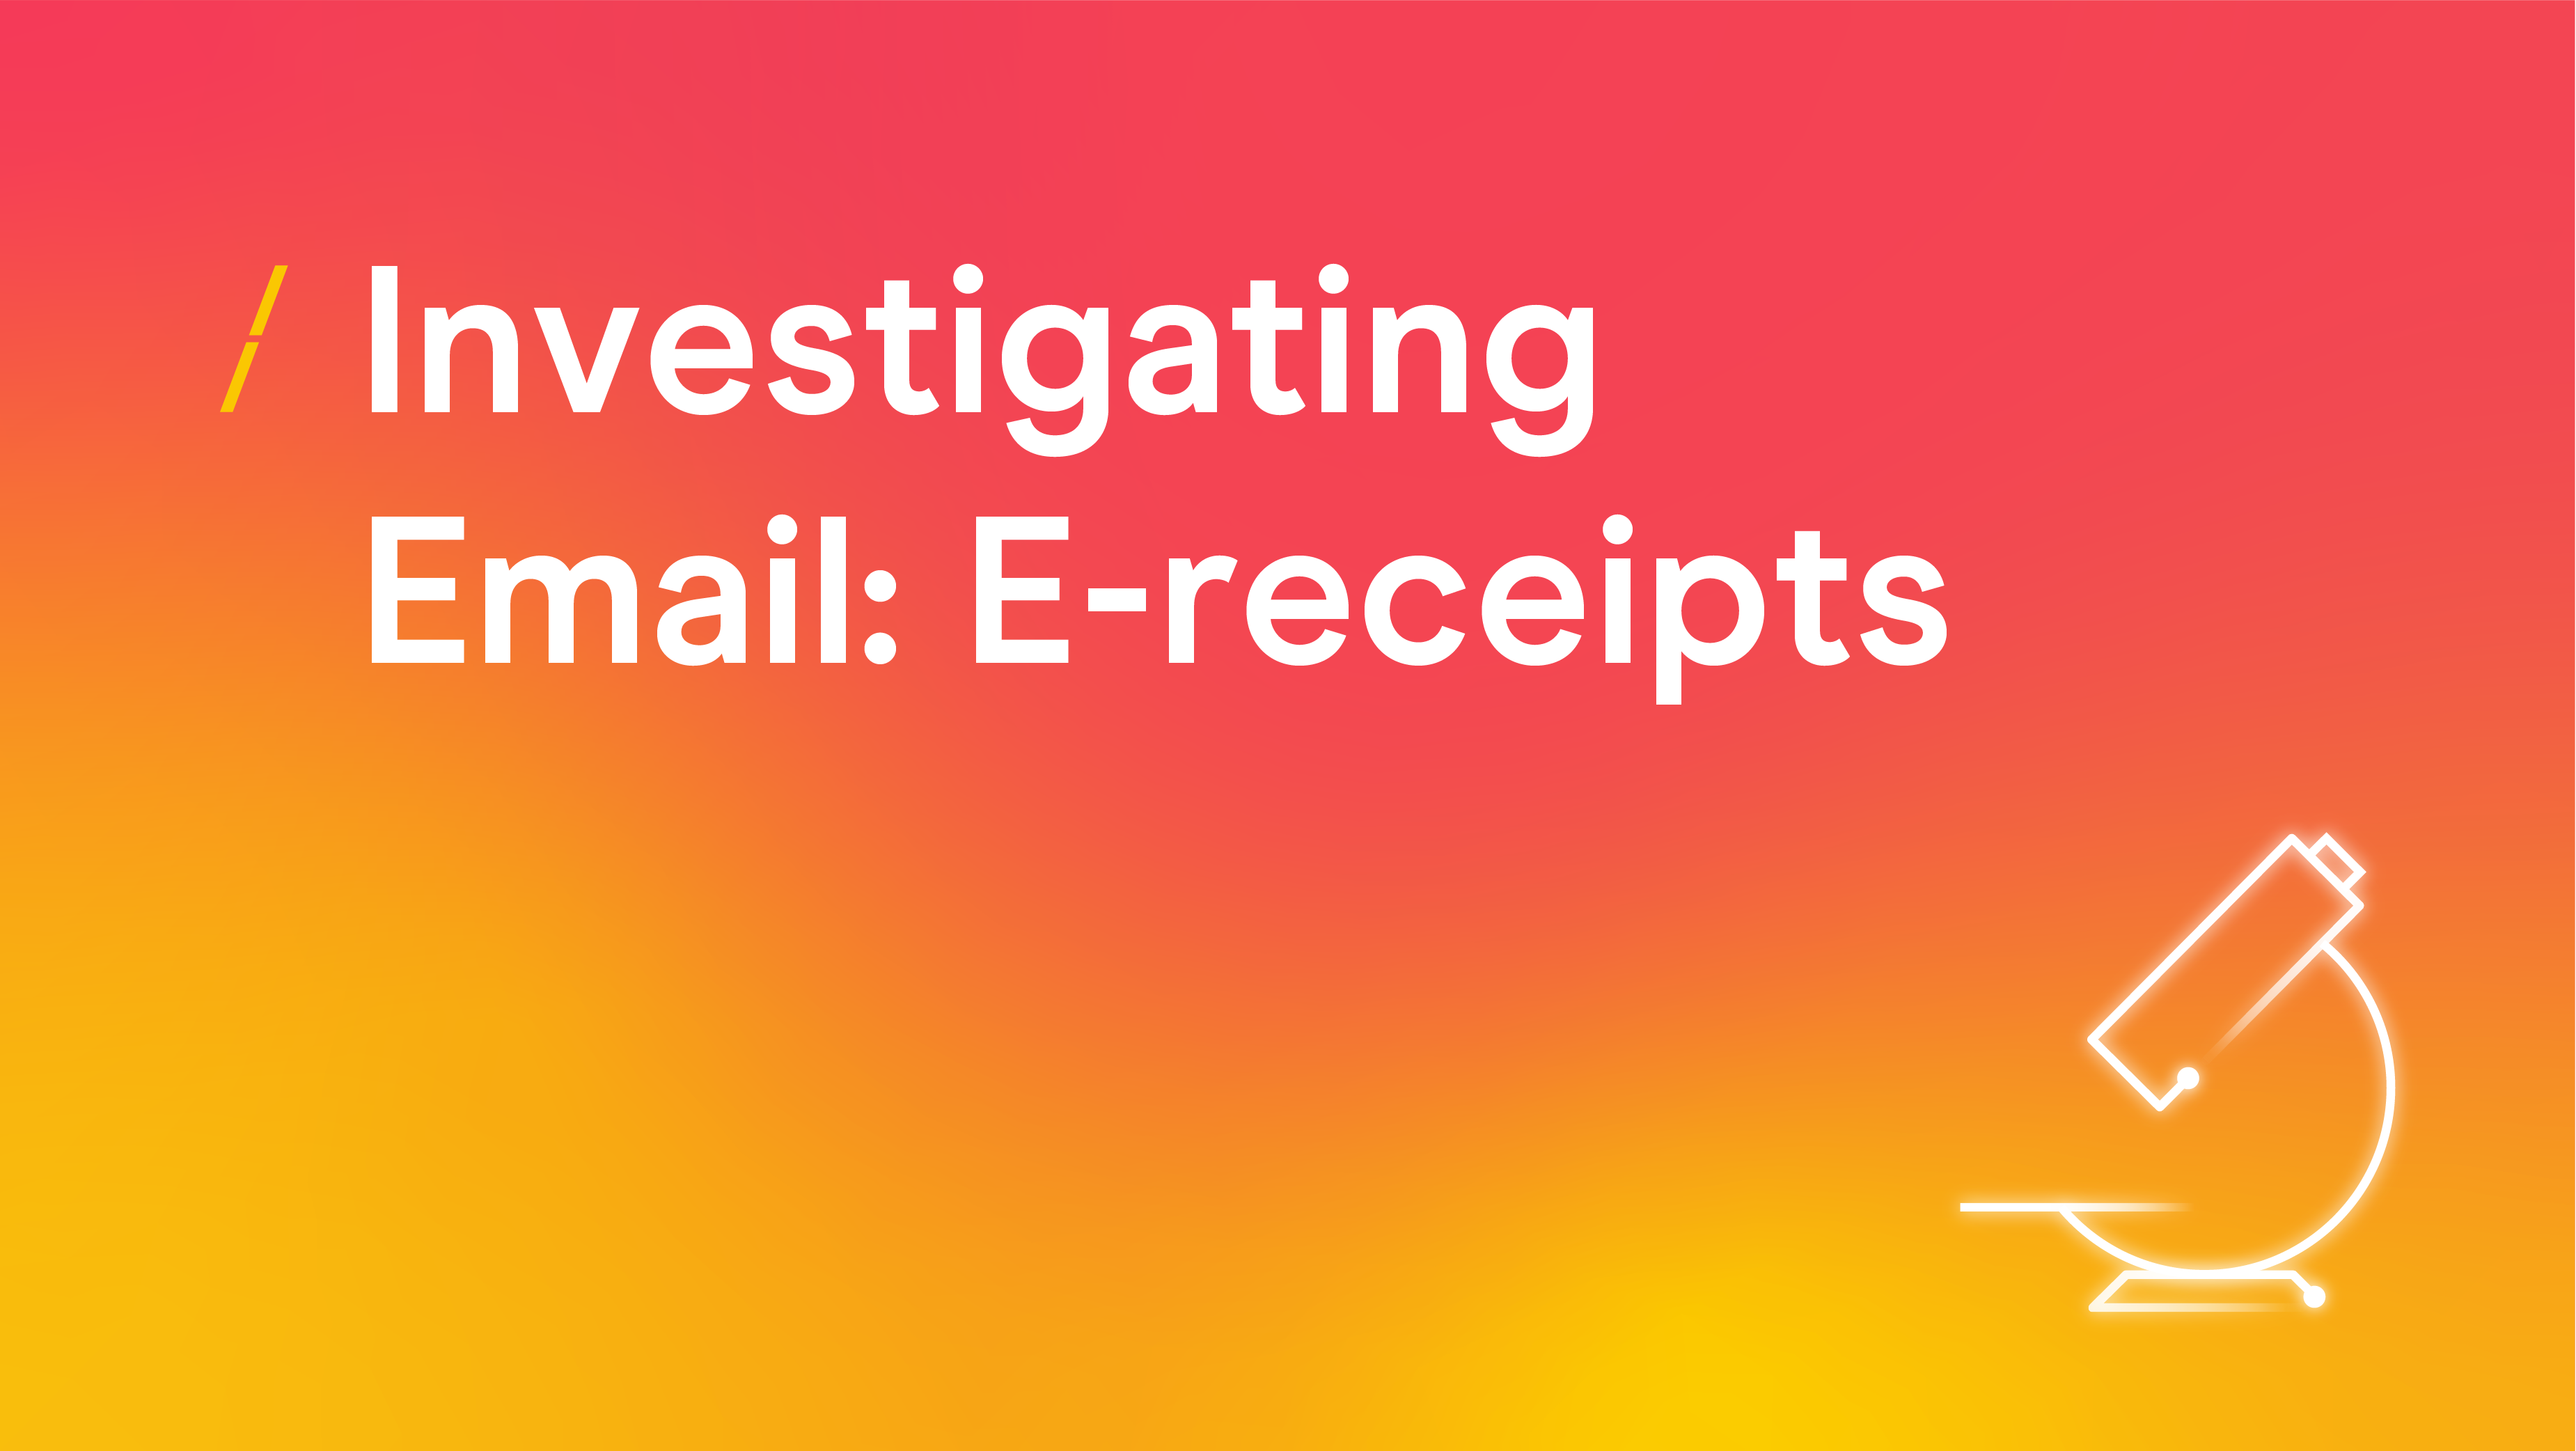 Investigating Email- E-receipts_Research articles copy.png